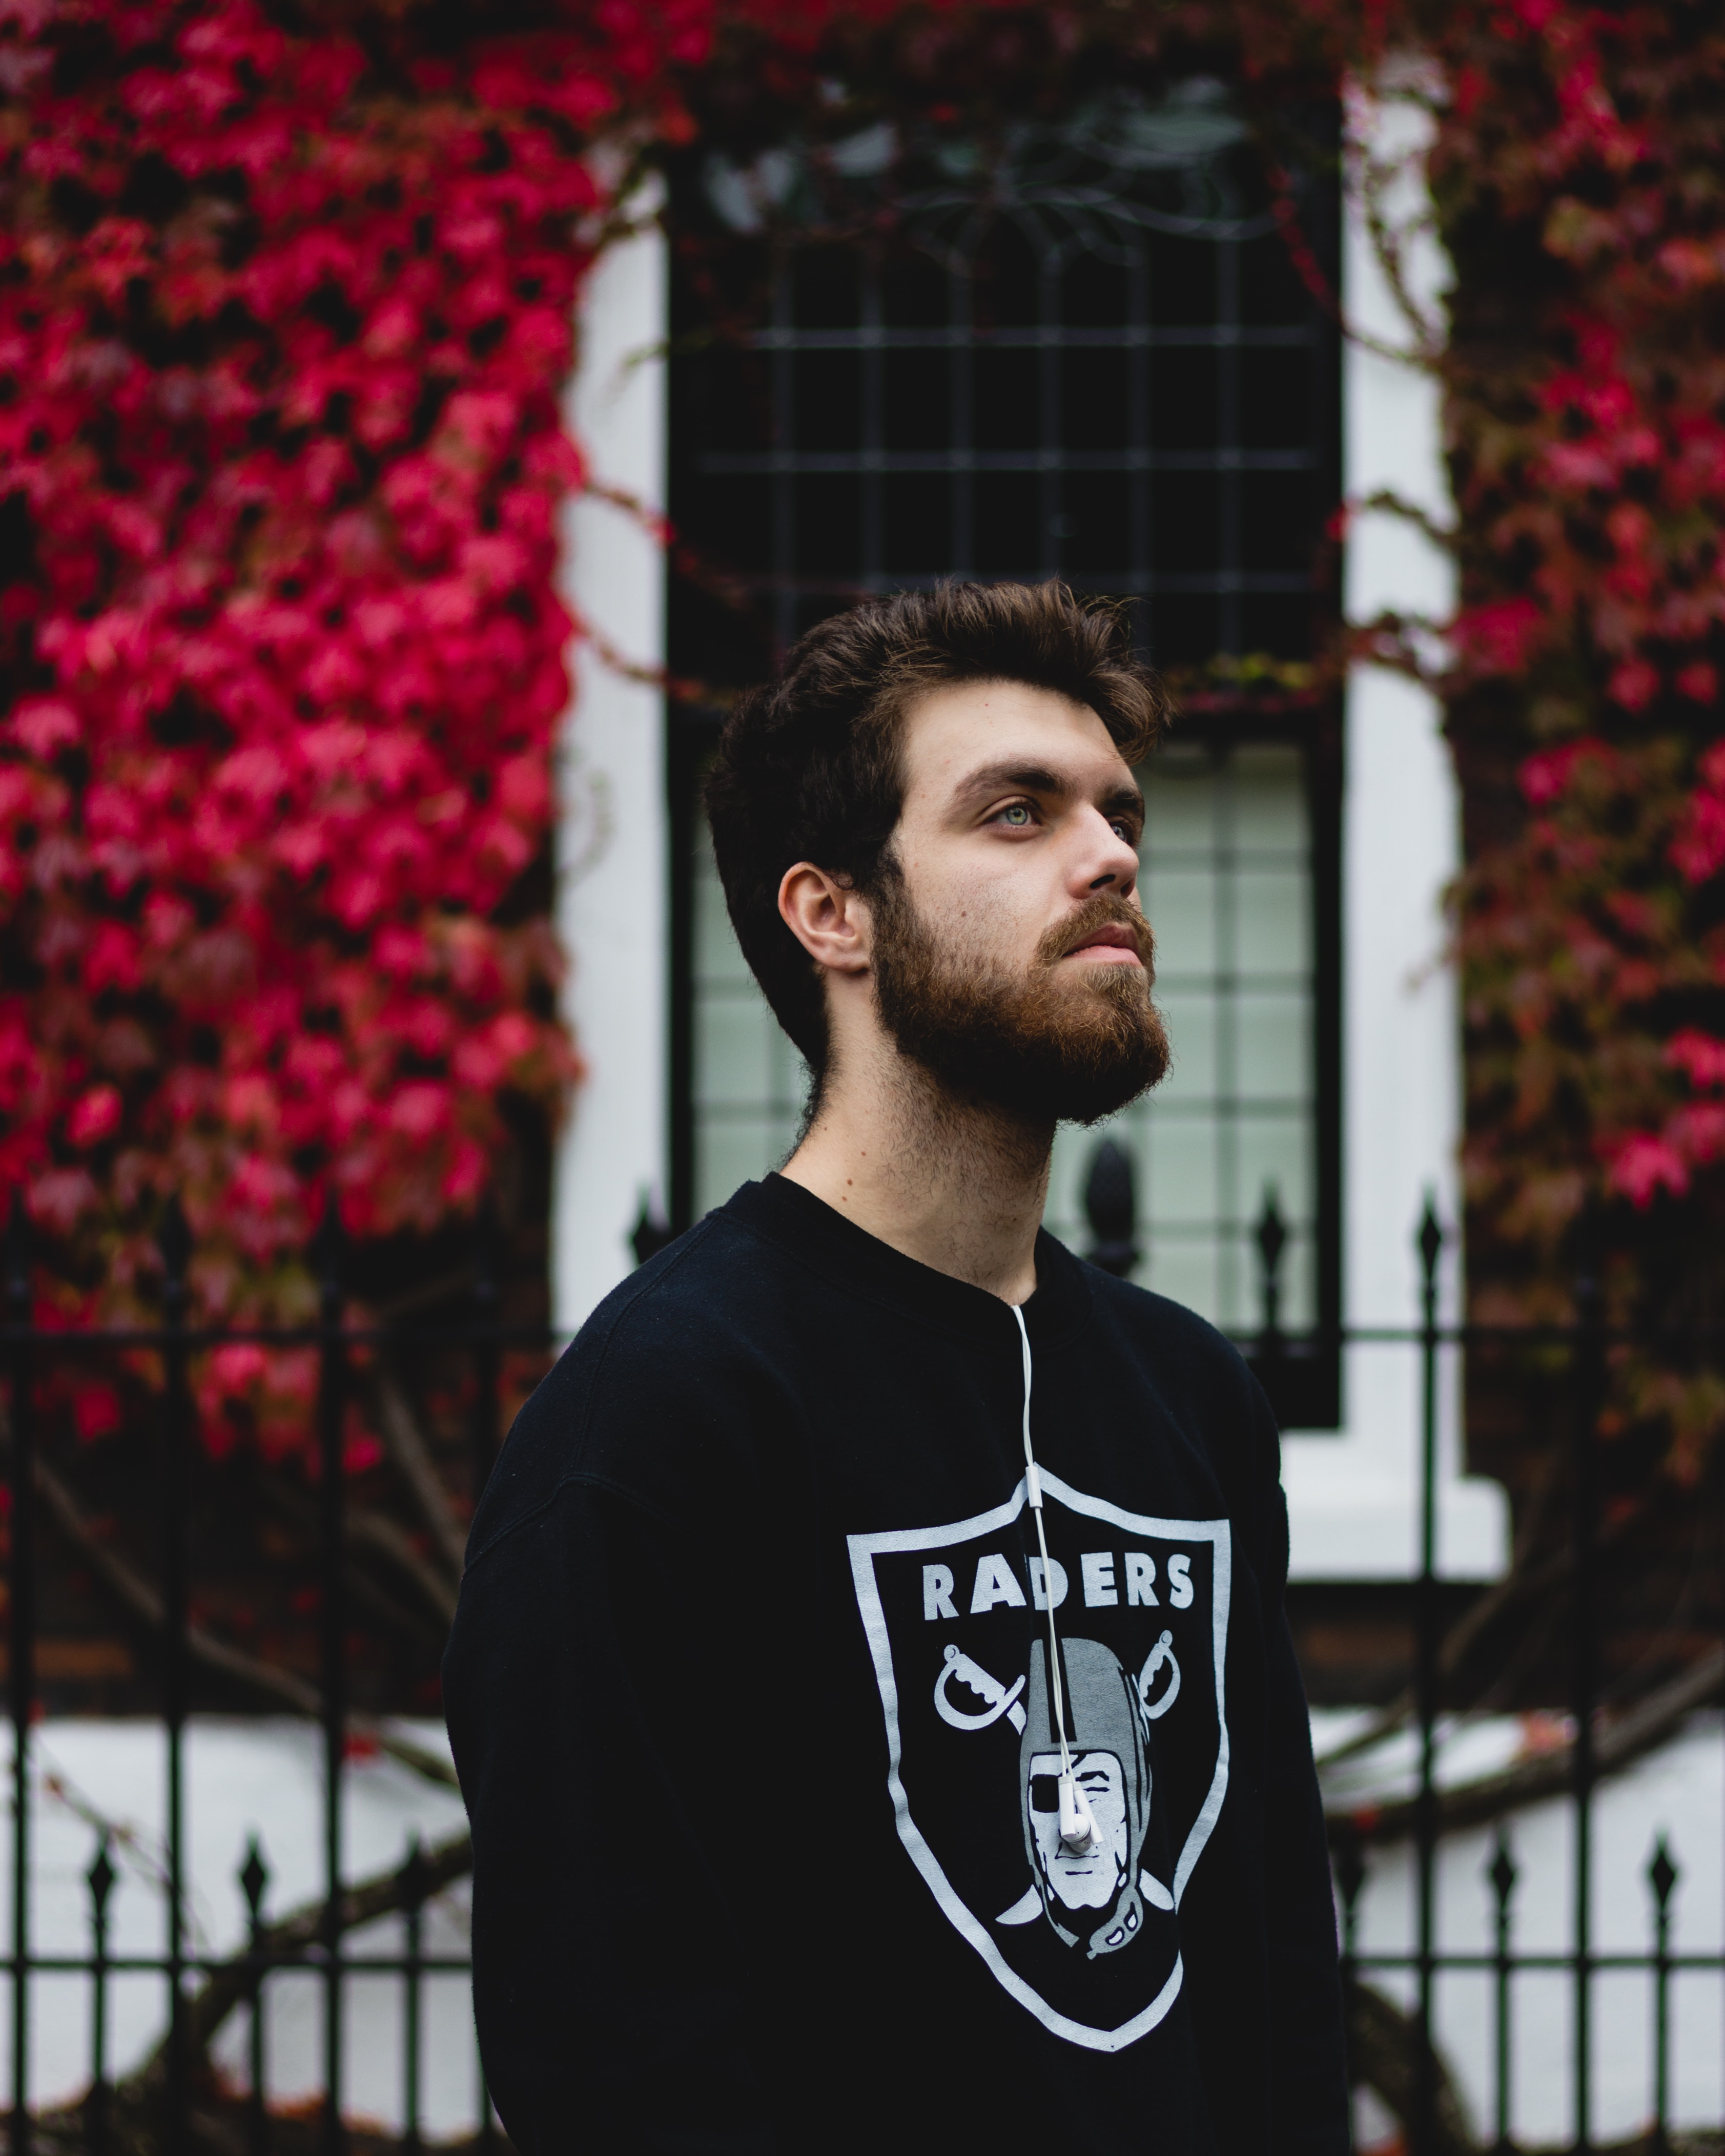 man in black Oakland Raiders long-sleeved shirt